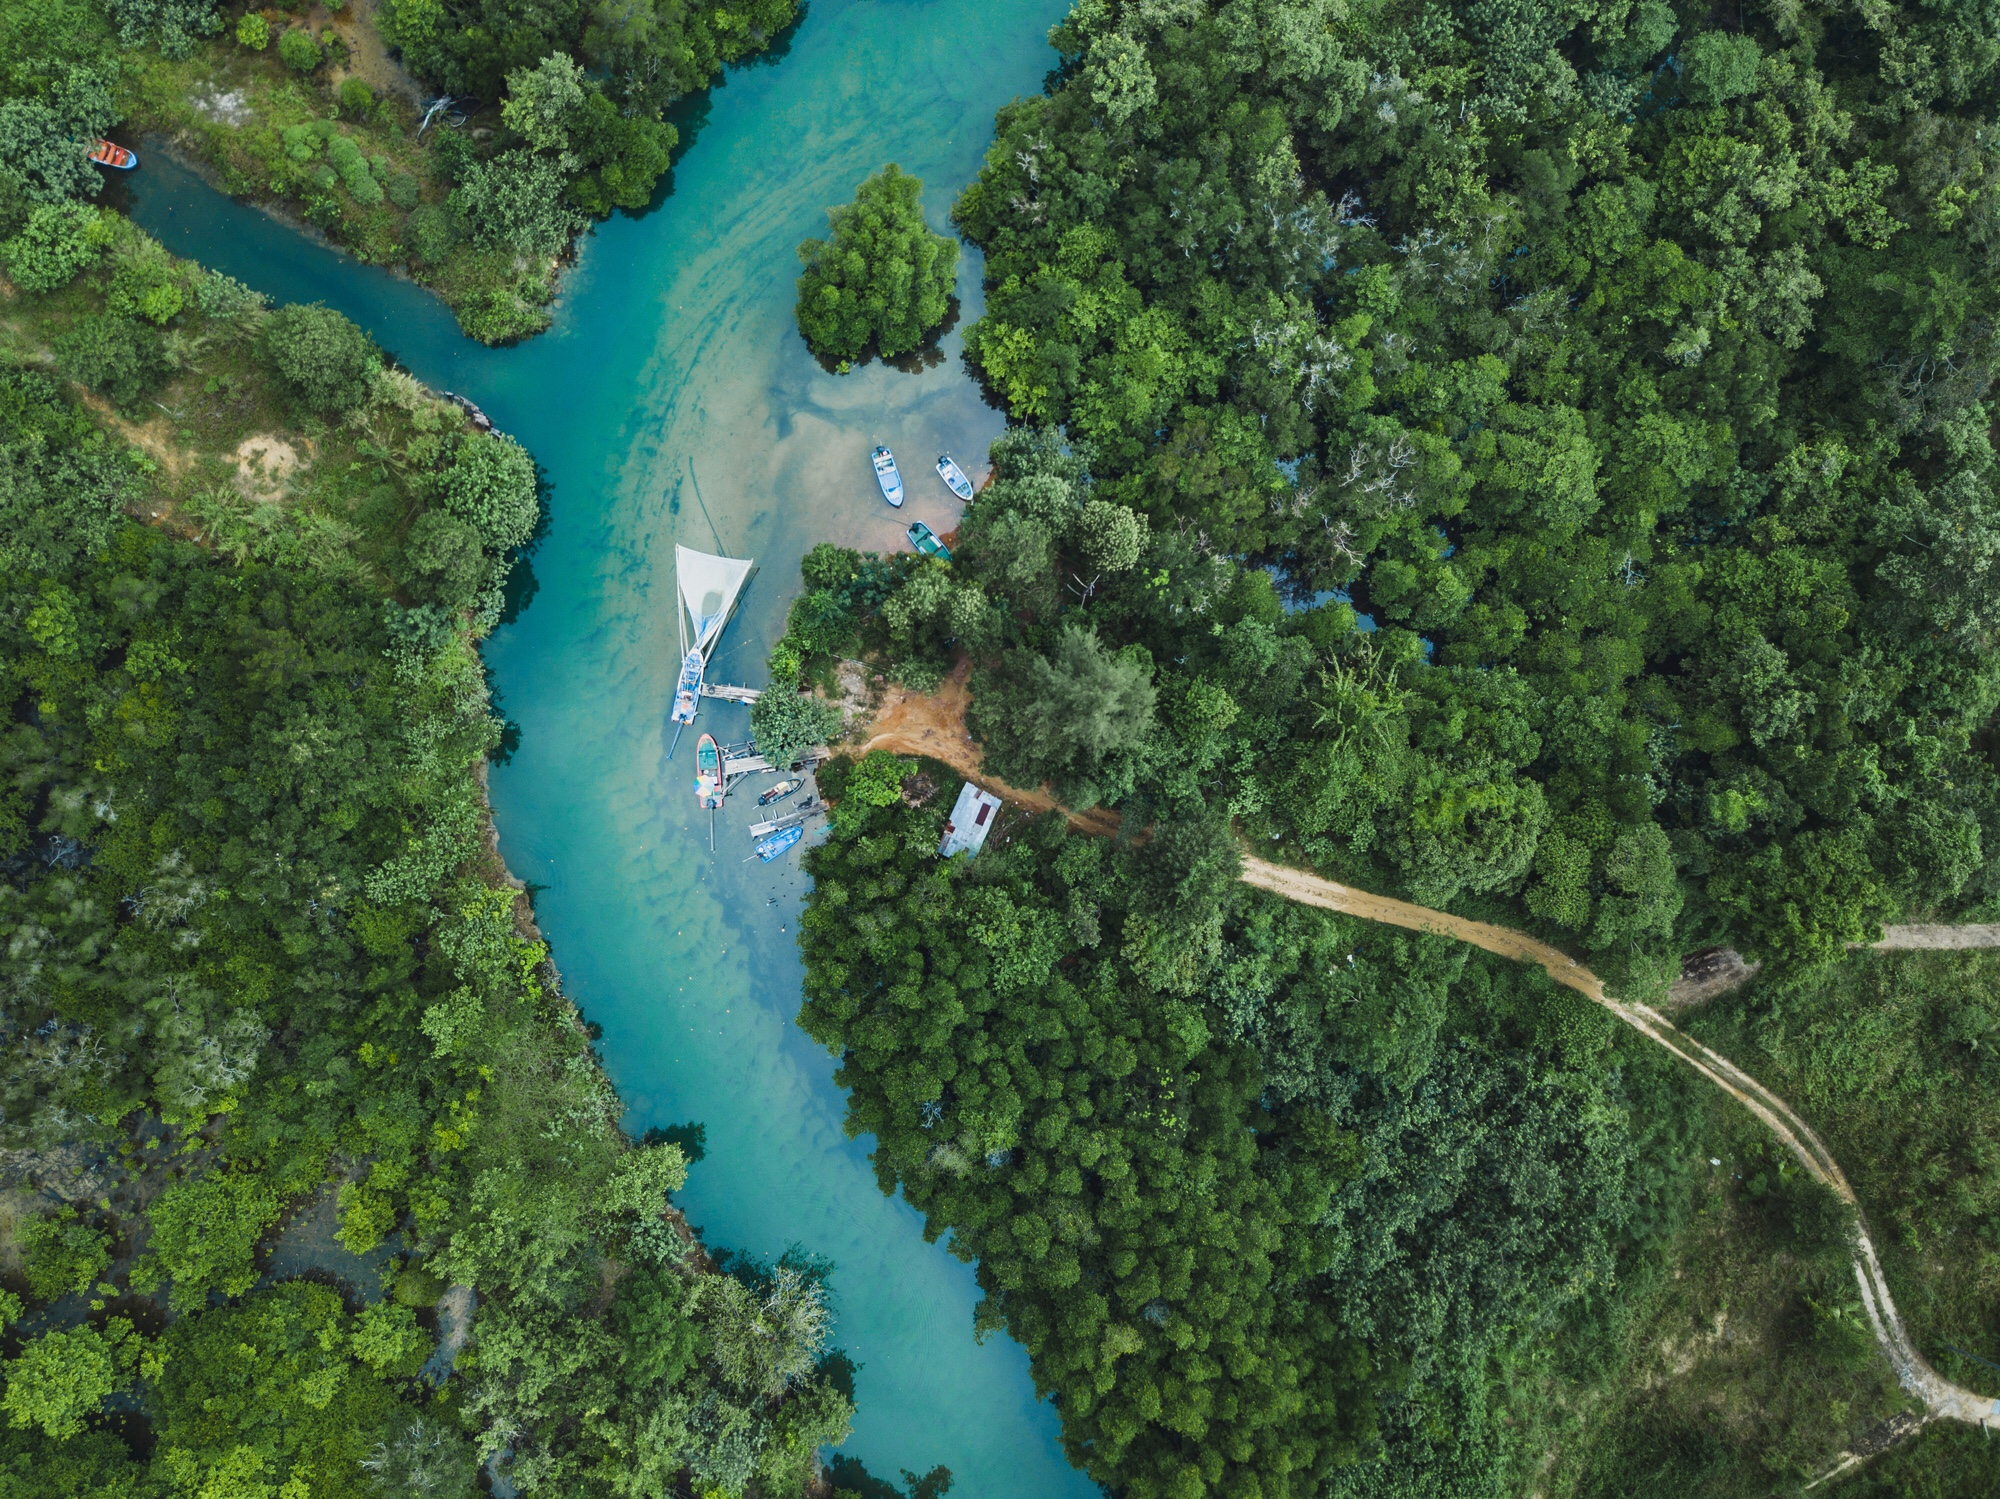 Aerial view of Koh Chang, Thailand